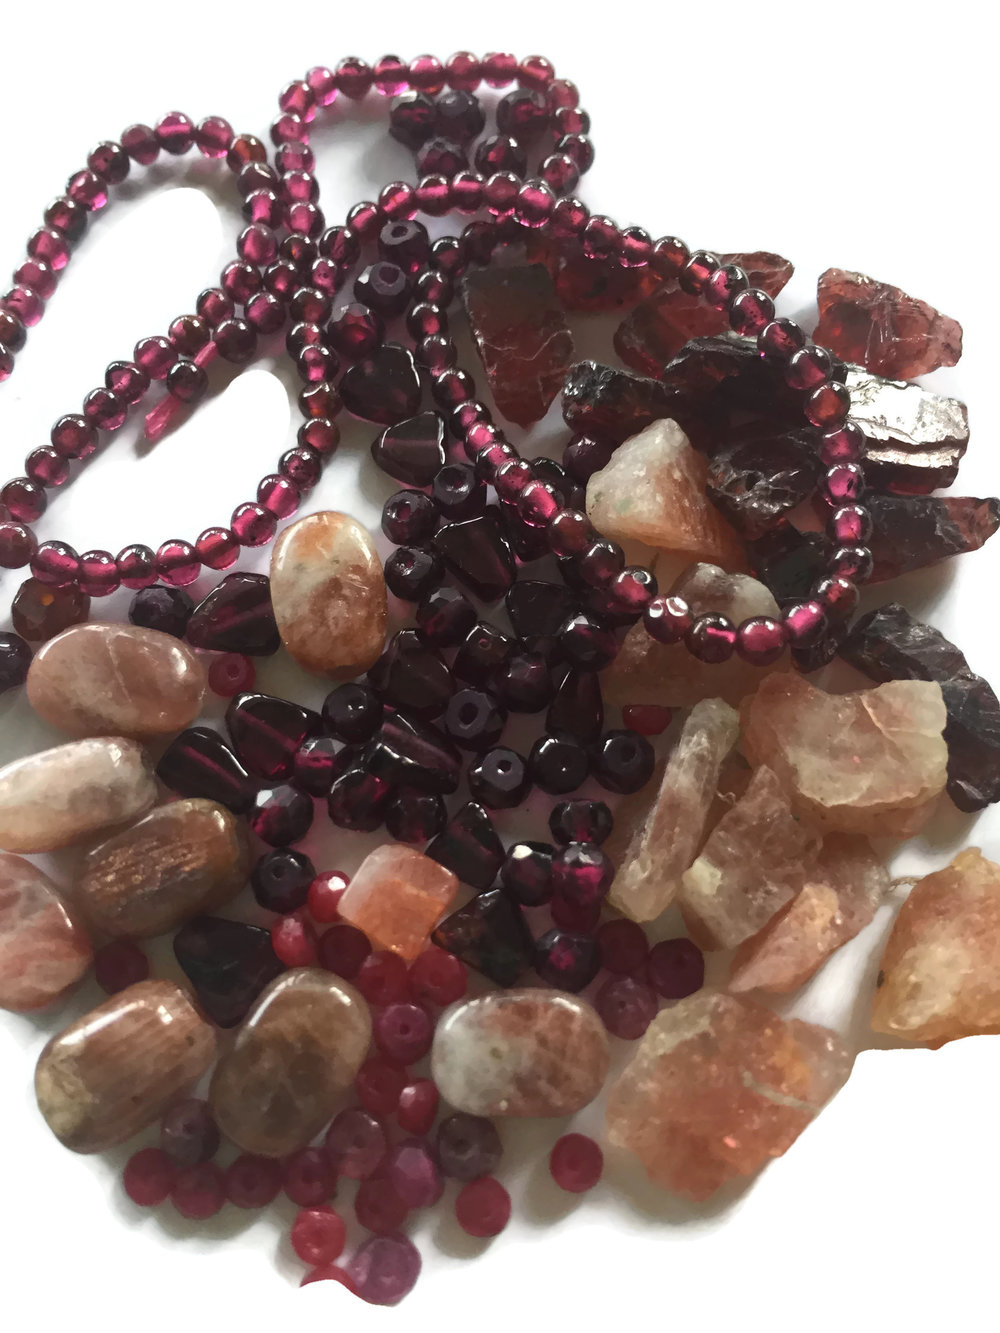 the Sun's gems bestow warmth + strengthen will + promote independence + helps with circulation + increase digestive fire - Gems: Ruby, Garnet, Star Ruby, Red Spinel, Red Zircon, Red Tourmaline, Sunstone, Rose Quartz